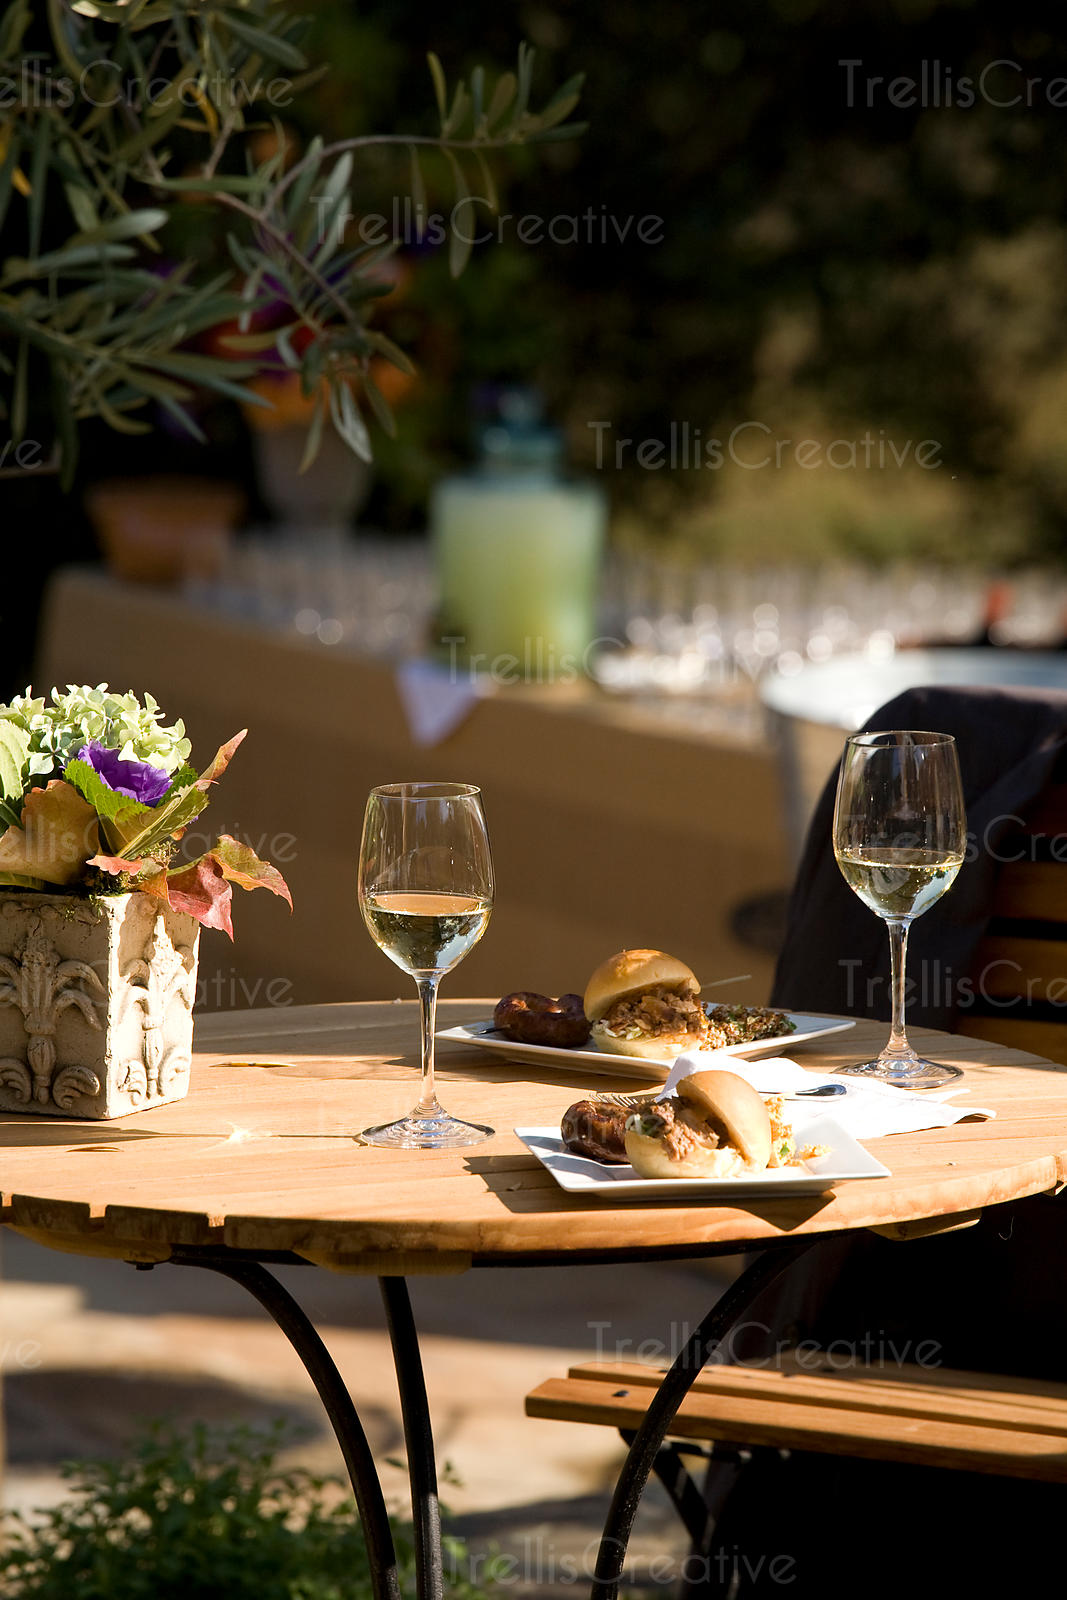 Dining on food and wine at an outdoor bistro